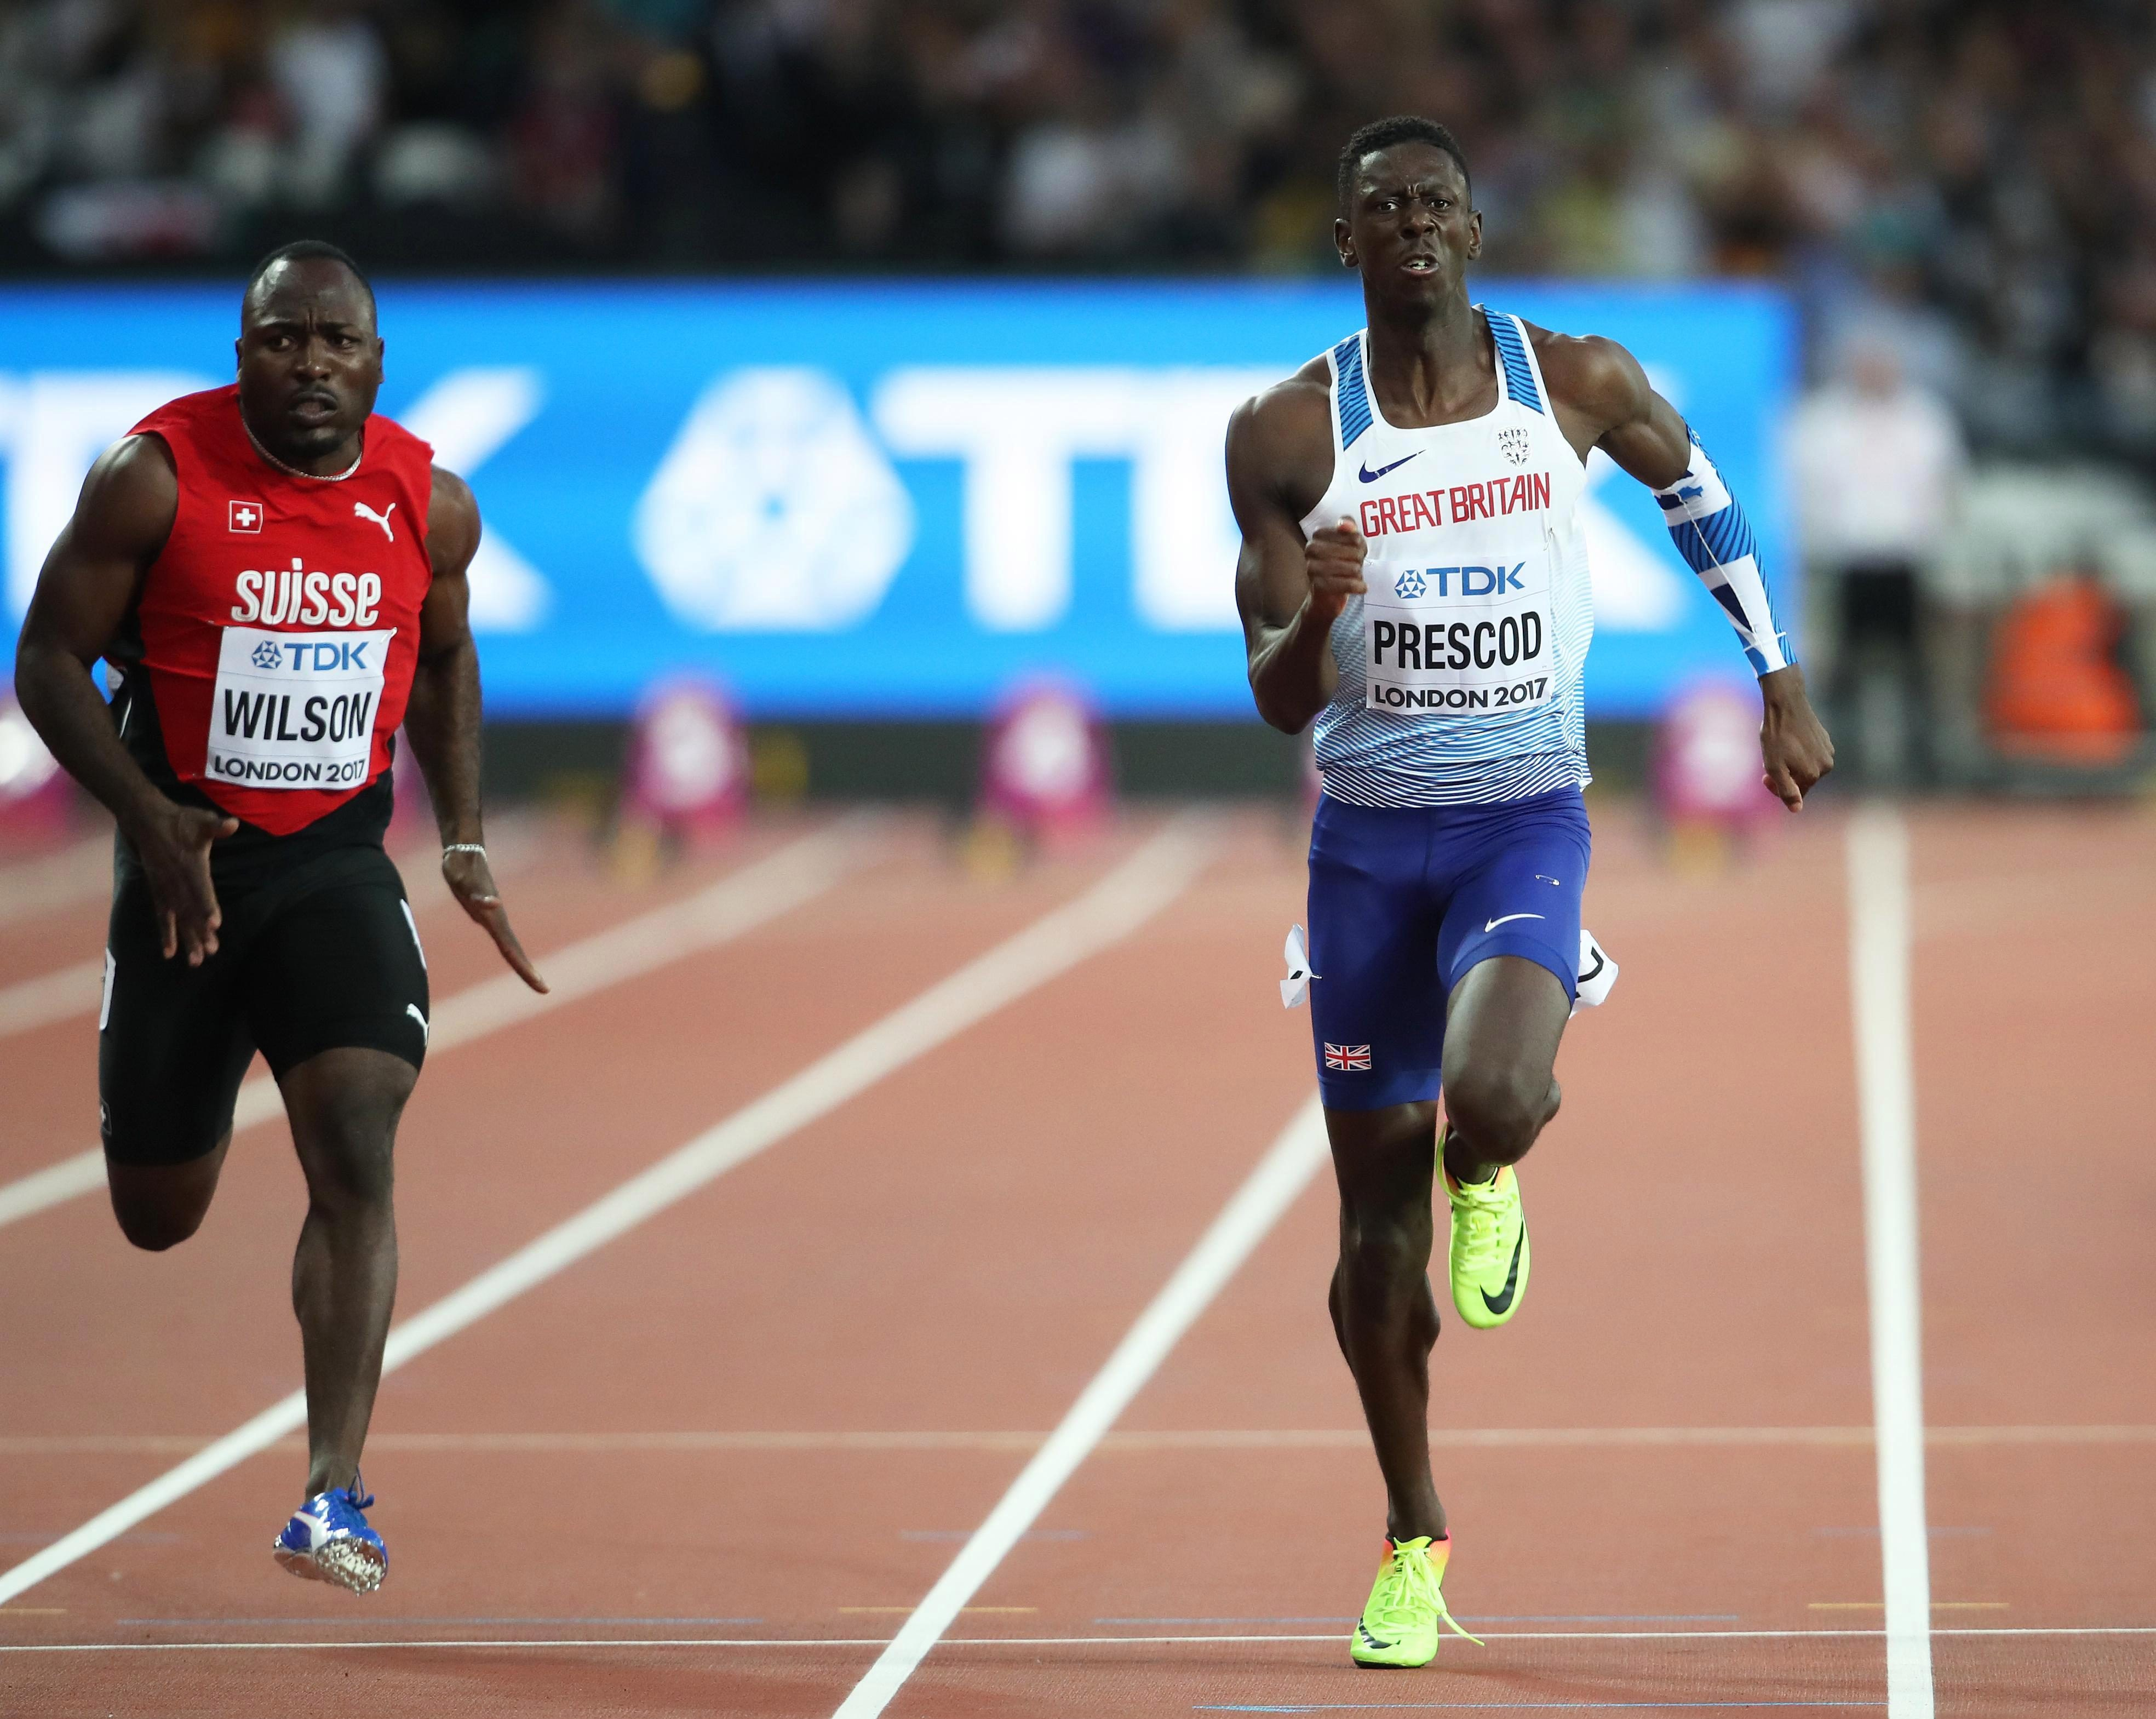 Reece Prescod is another British sprinter to watch in the future